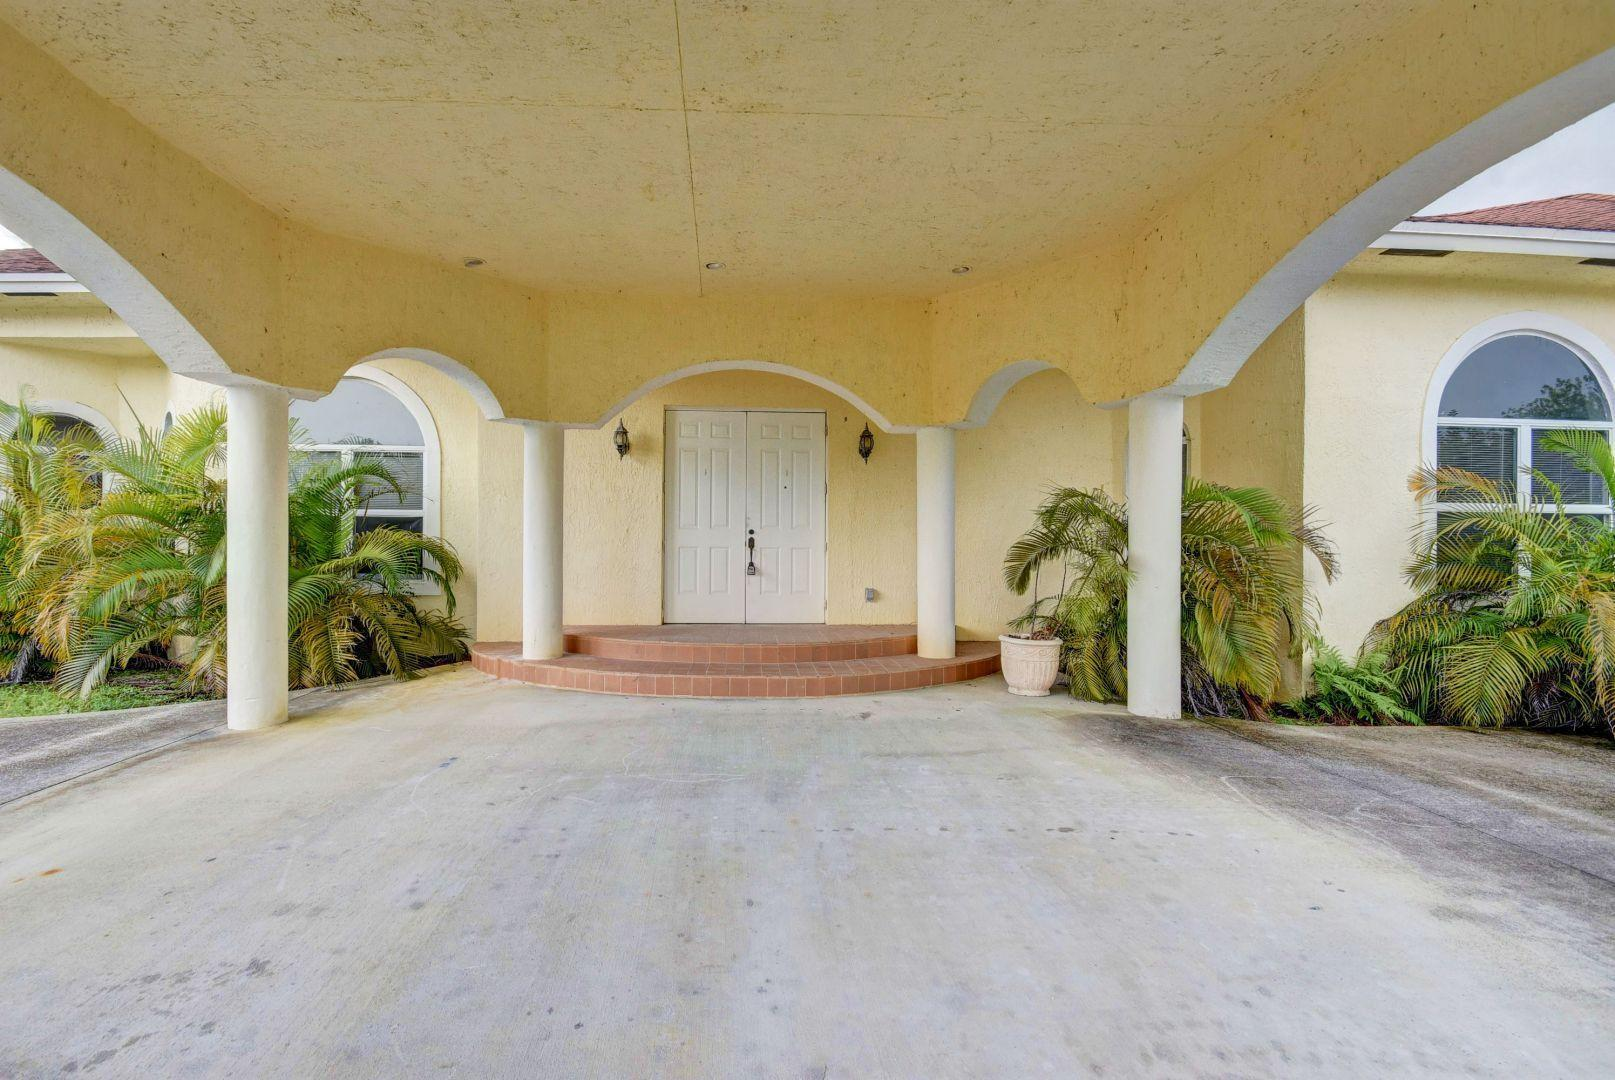 14094  43rd Road  For Sale 10696195, FL